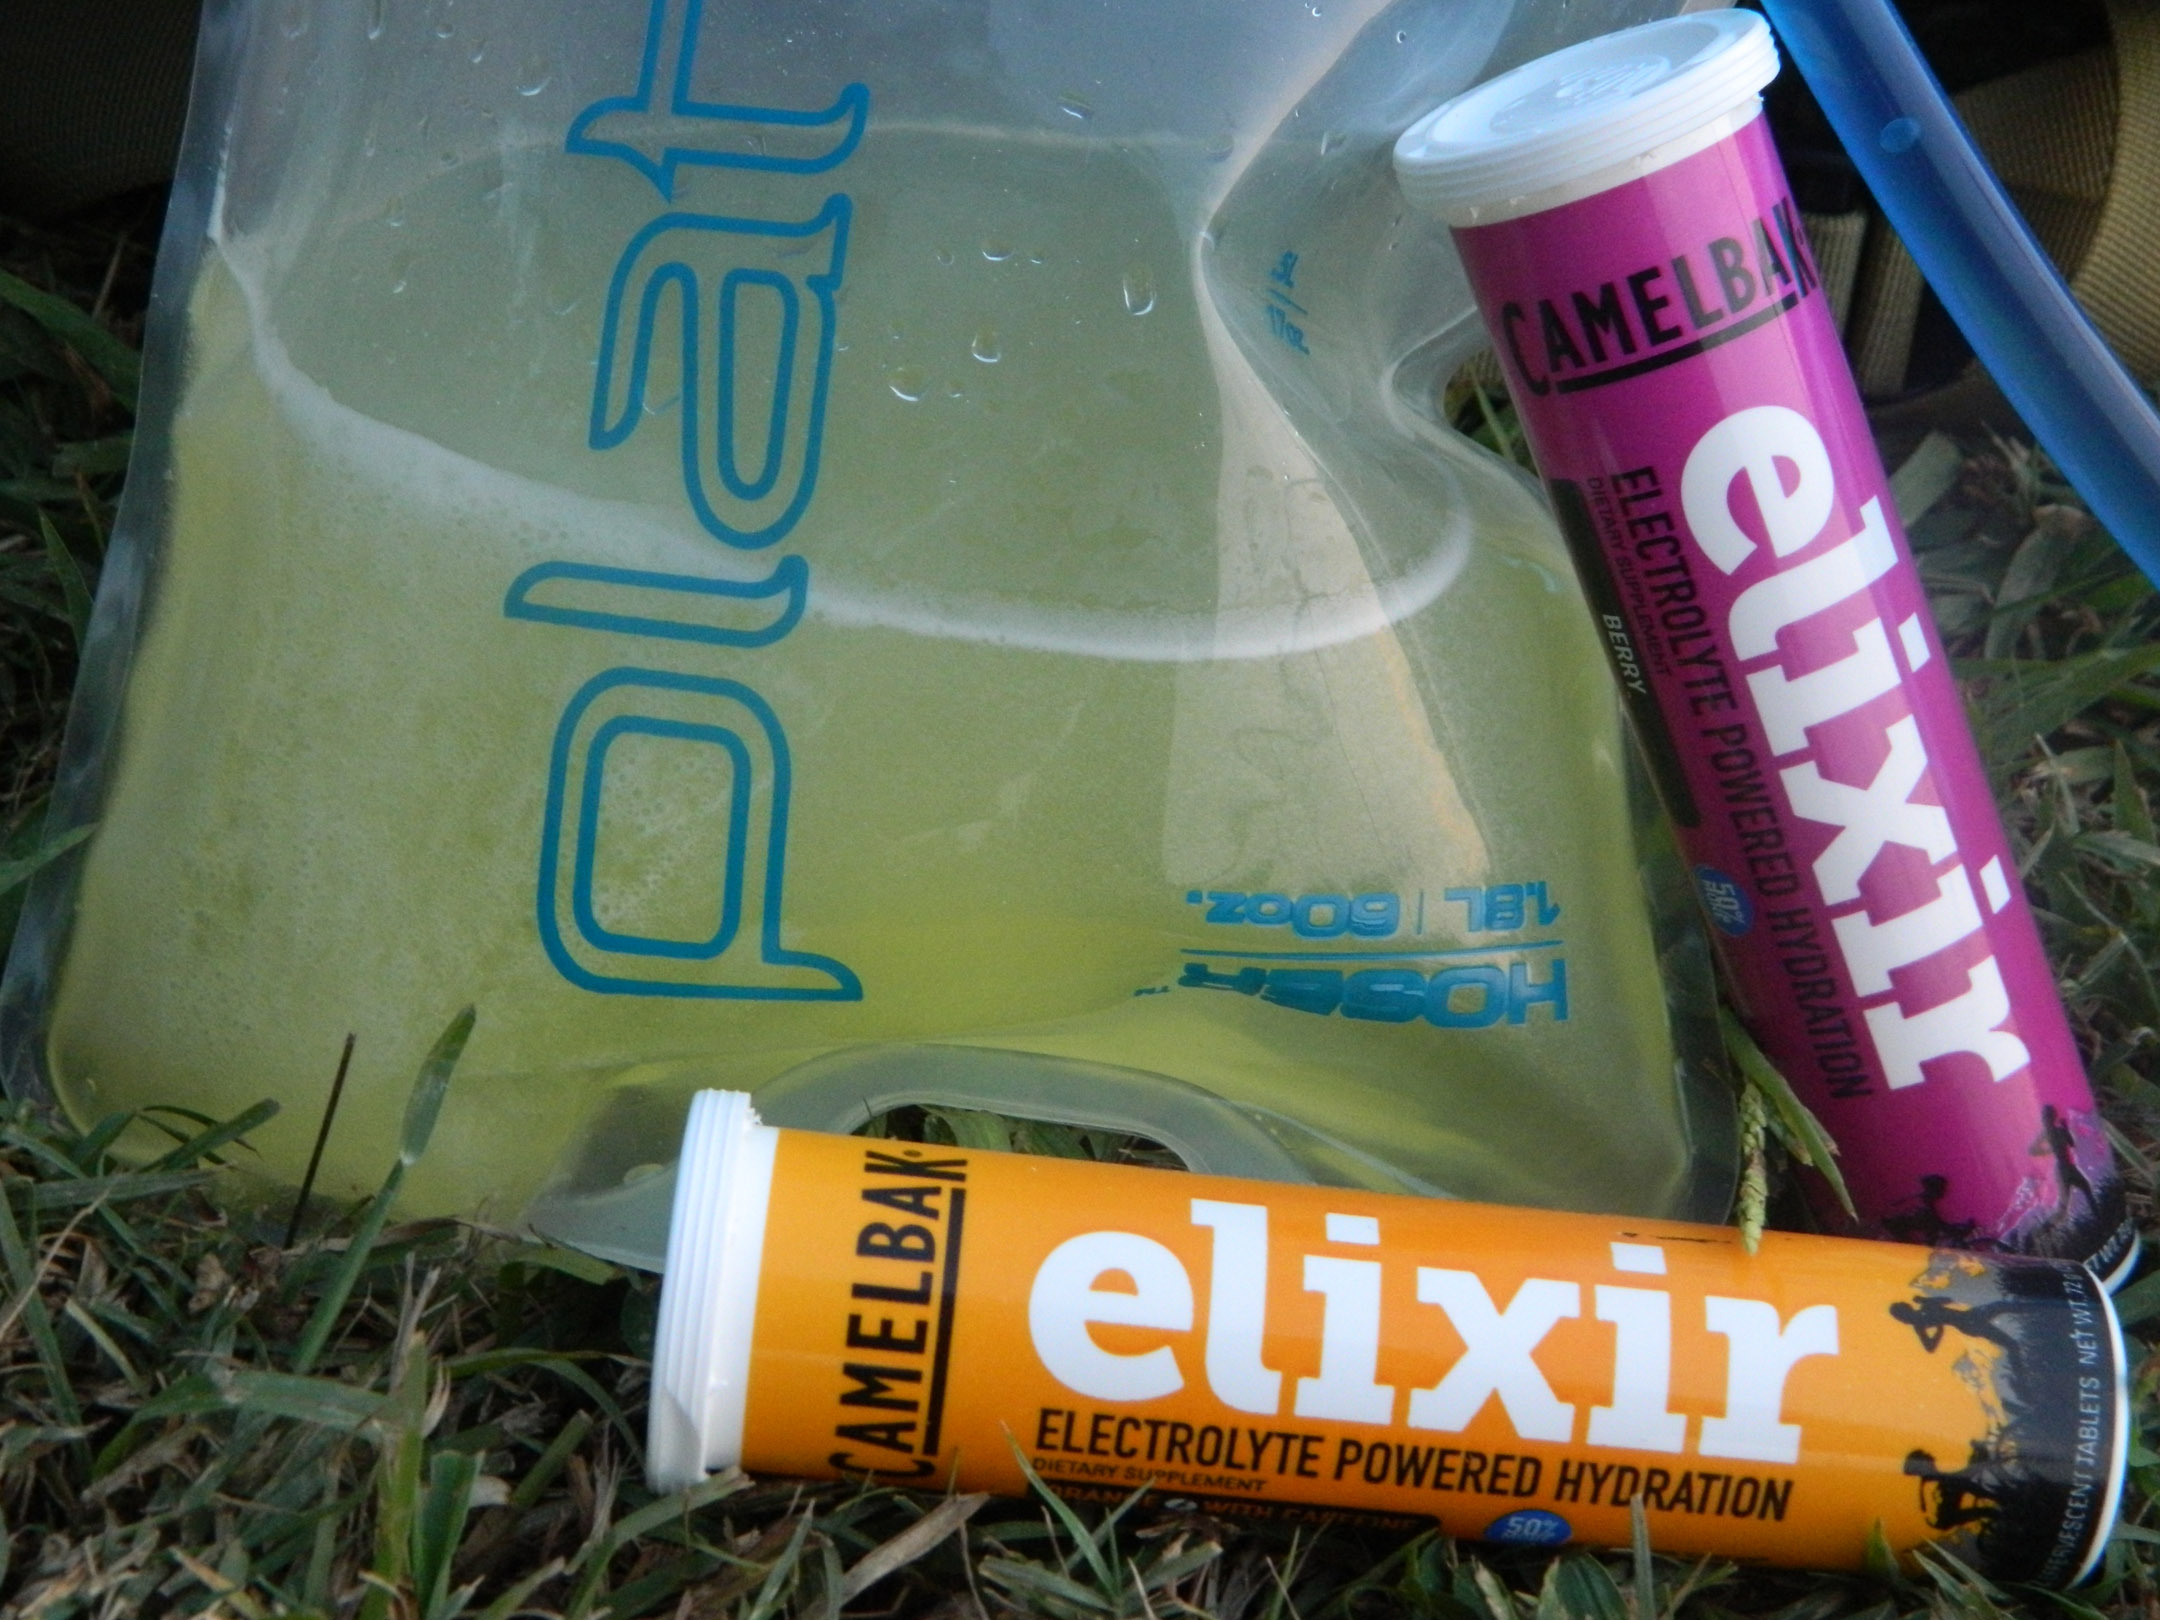 Camelbak Elixir Electrolyte Replacement Tablets